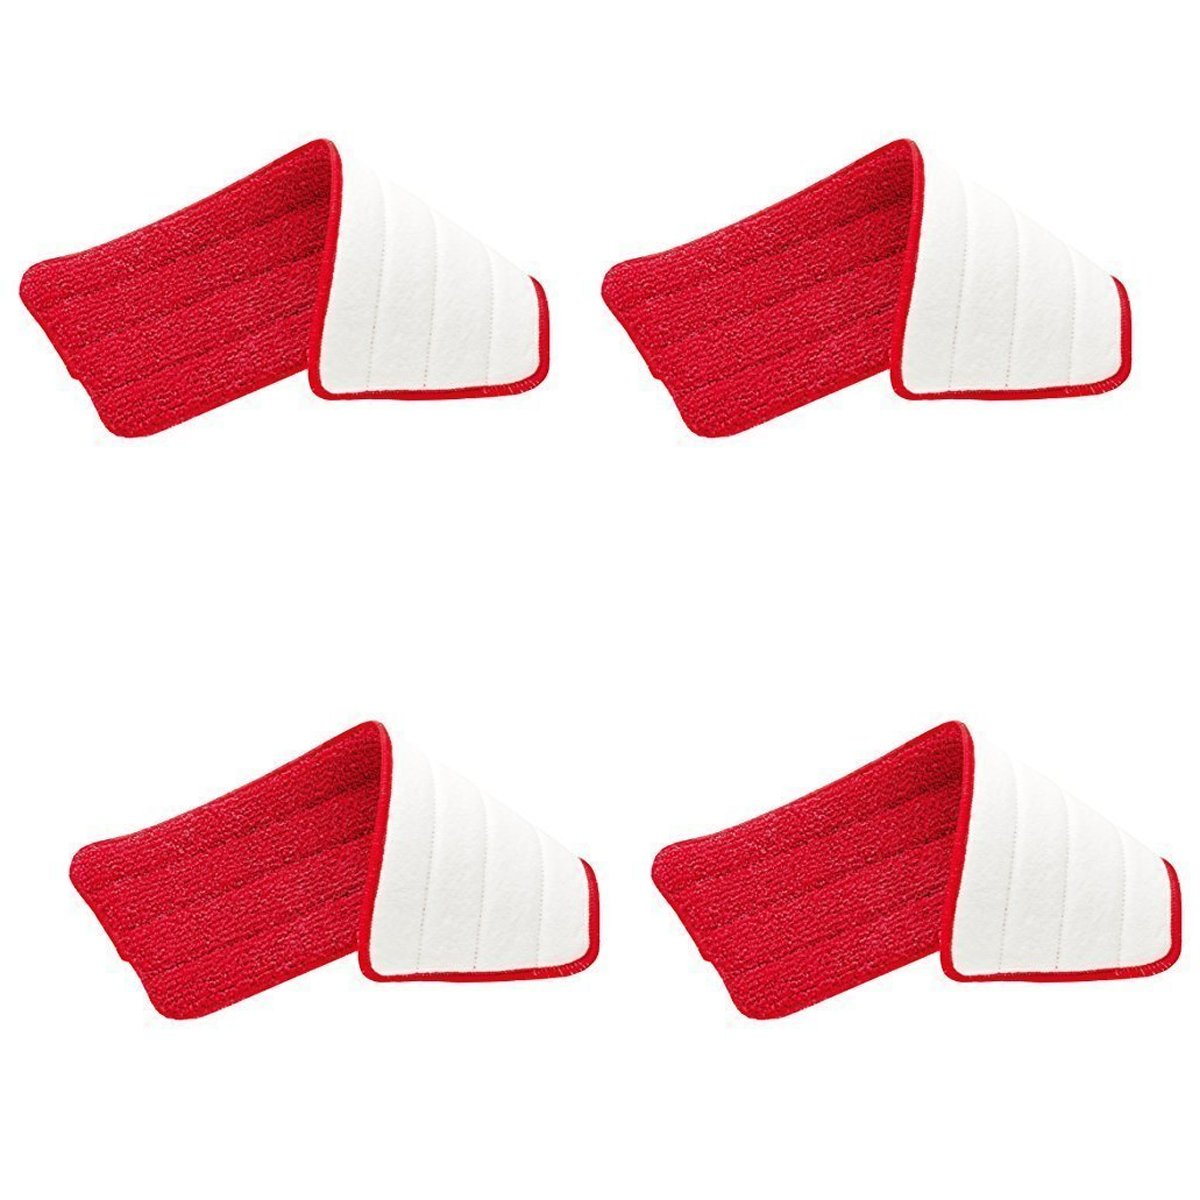 Rubbermaid - Reveal Mop Microfiber Cleaning Pad, Red, 15'' Wide (4-Pack)